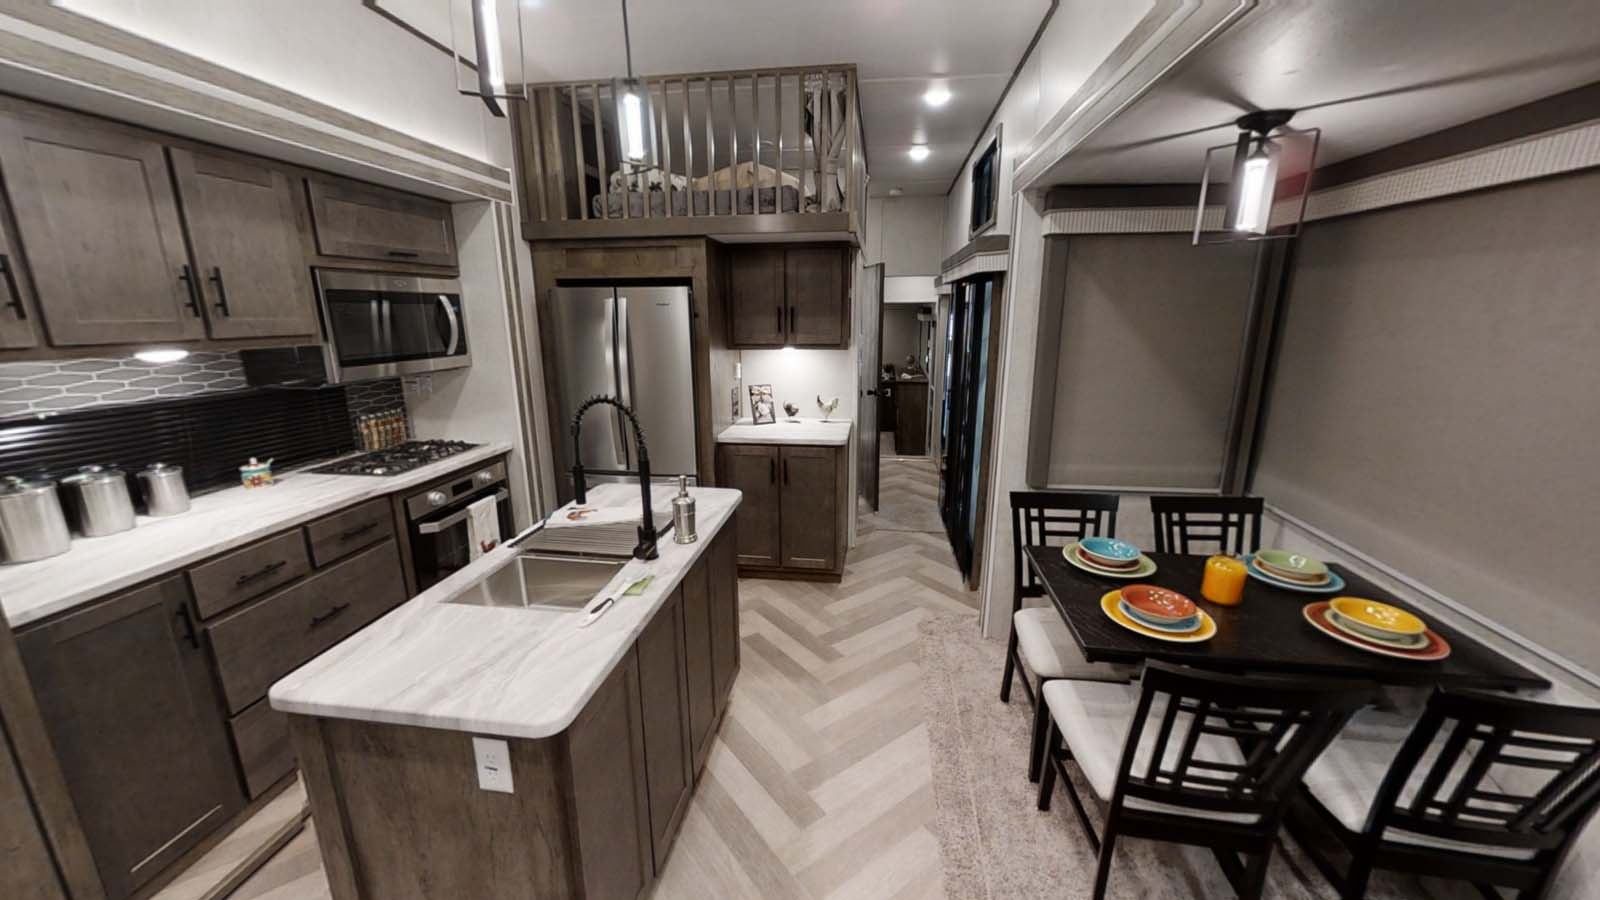 Is It Camping When Your Rv Has 2 Stories And 3 Bedrooms